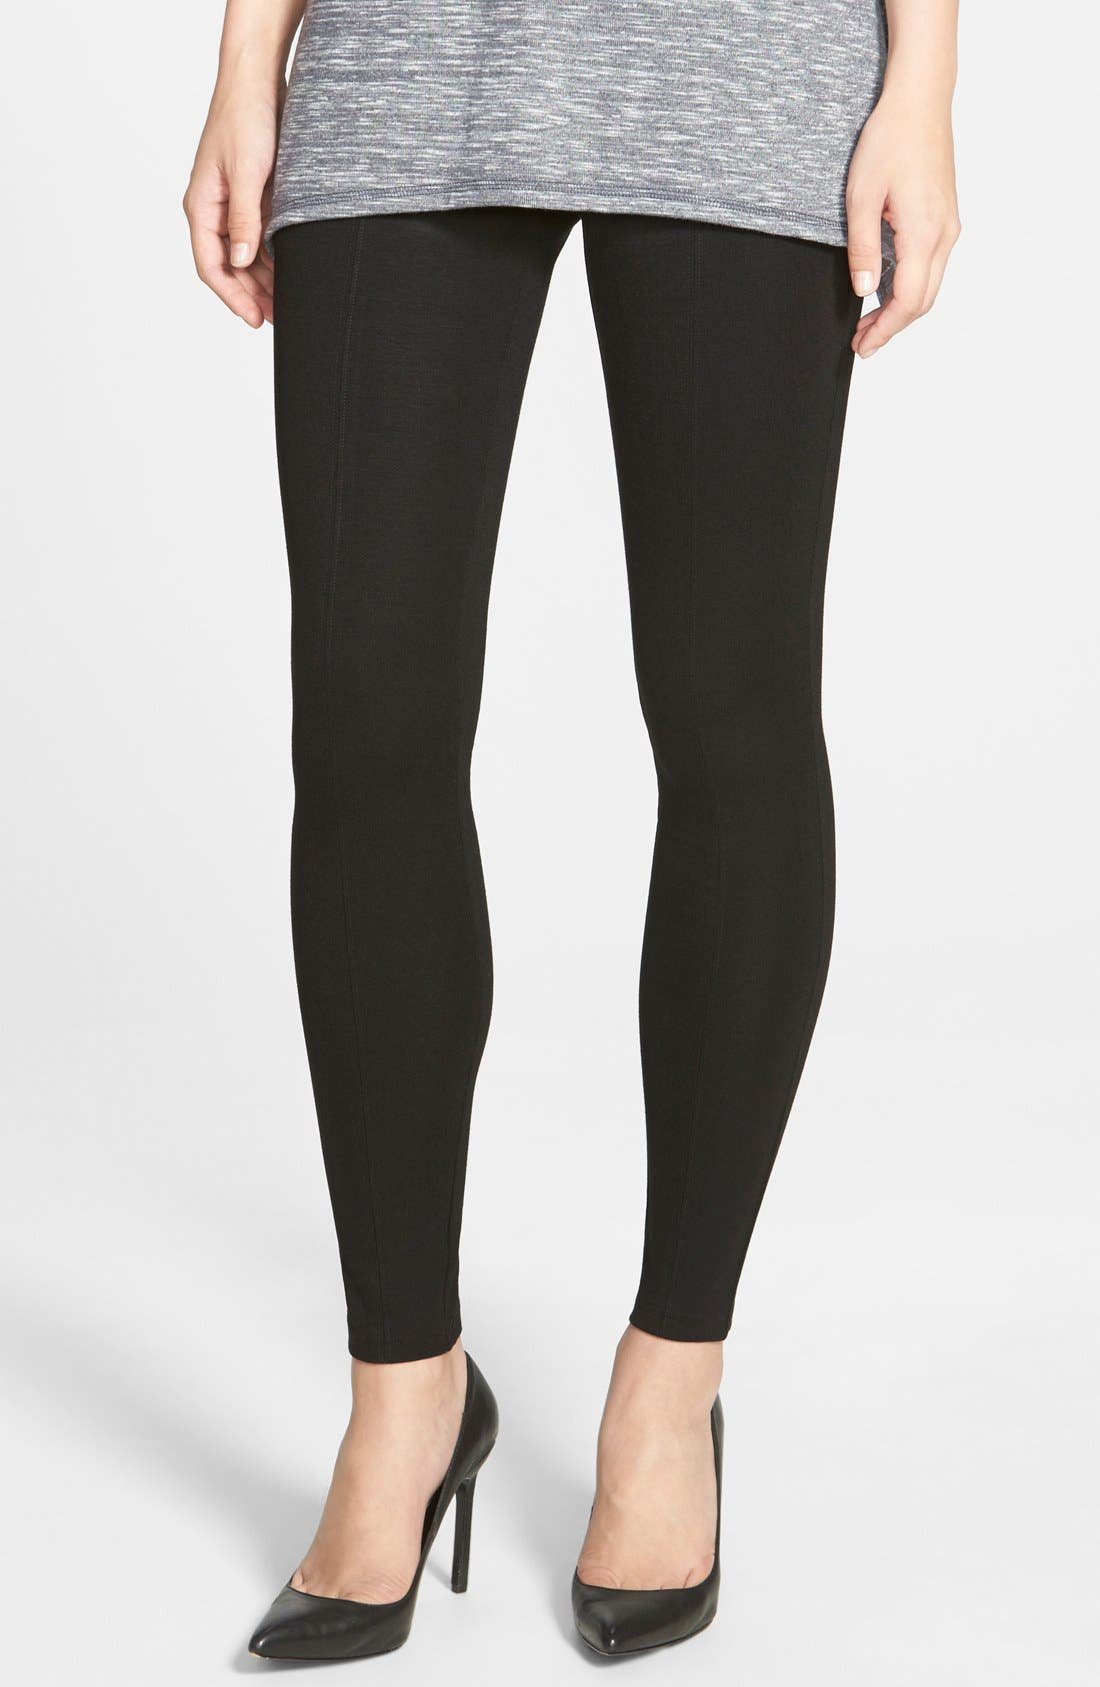 Hue Blackout Leggings